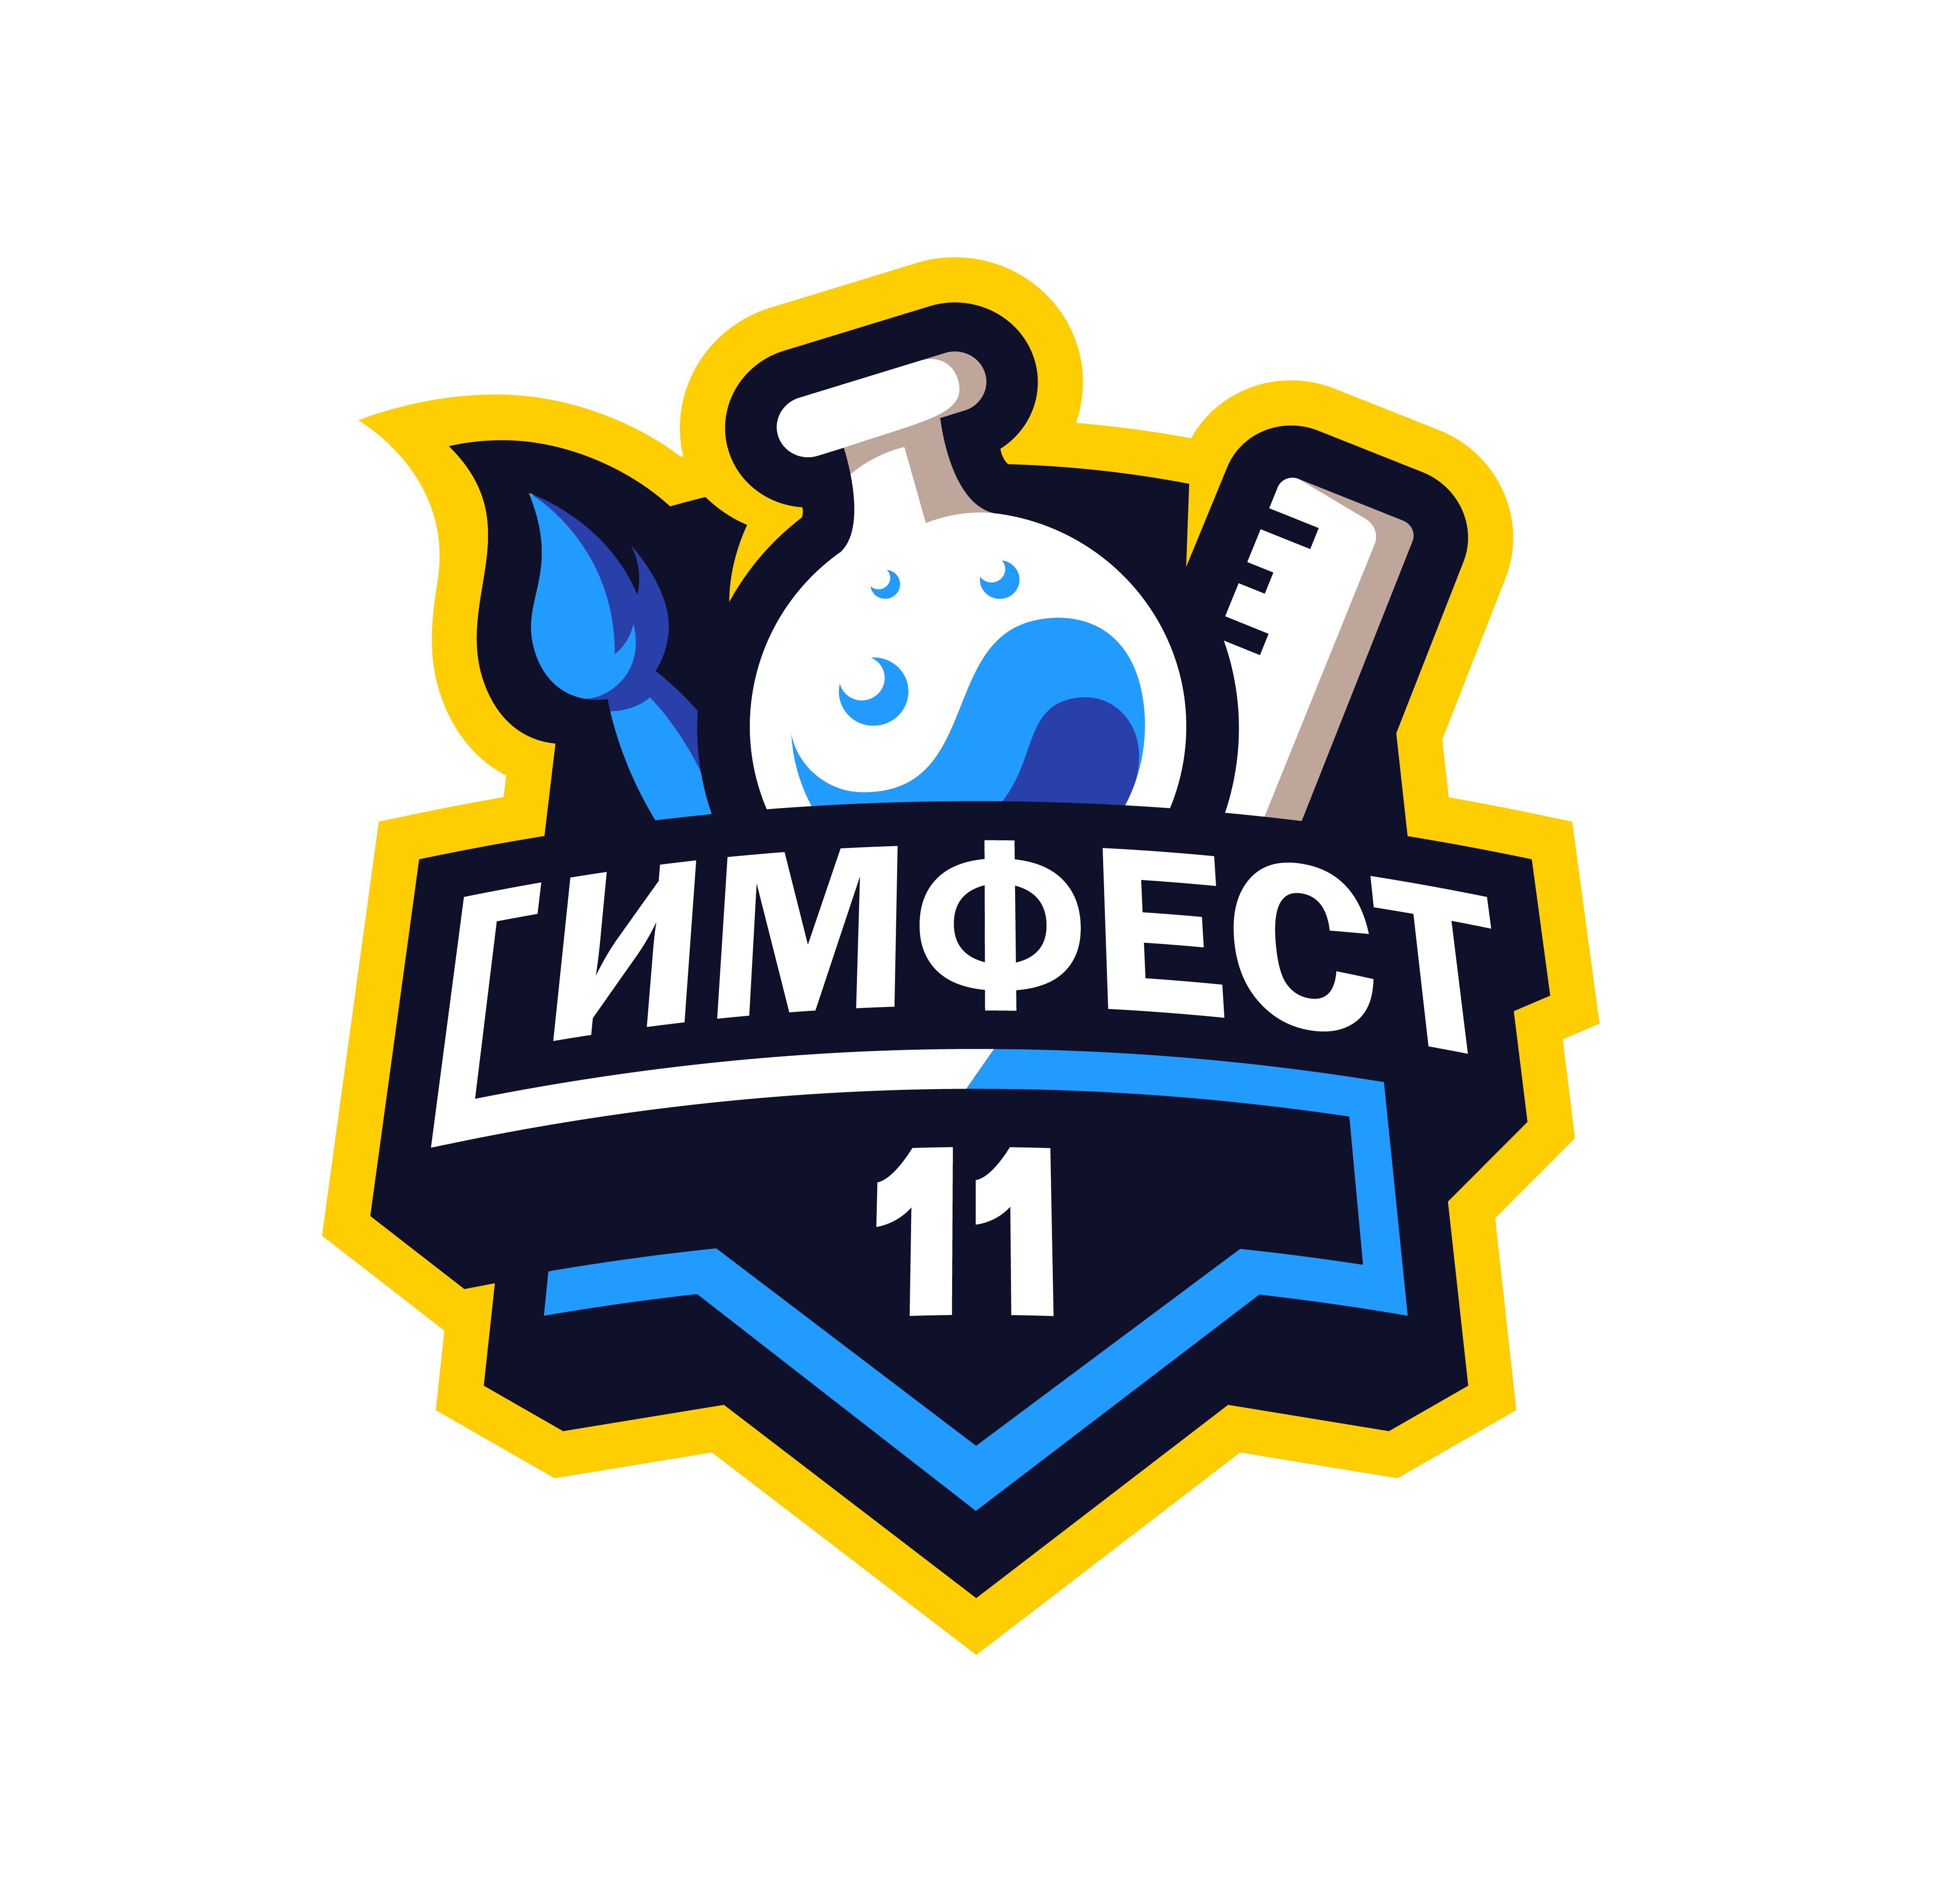 Гимфест 11